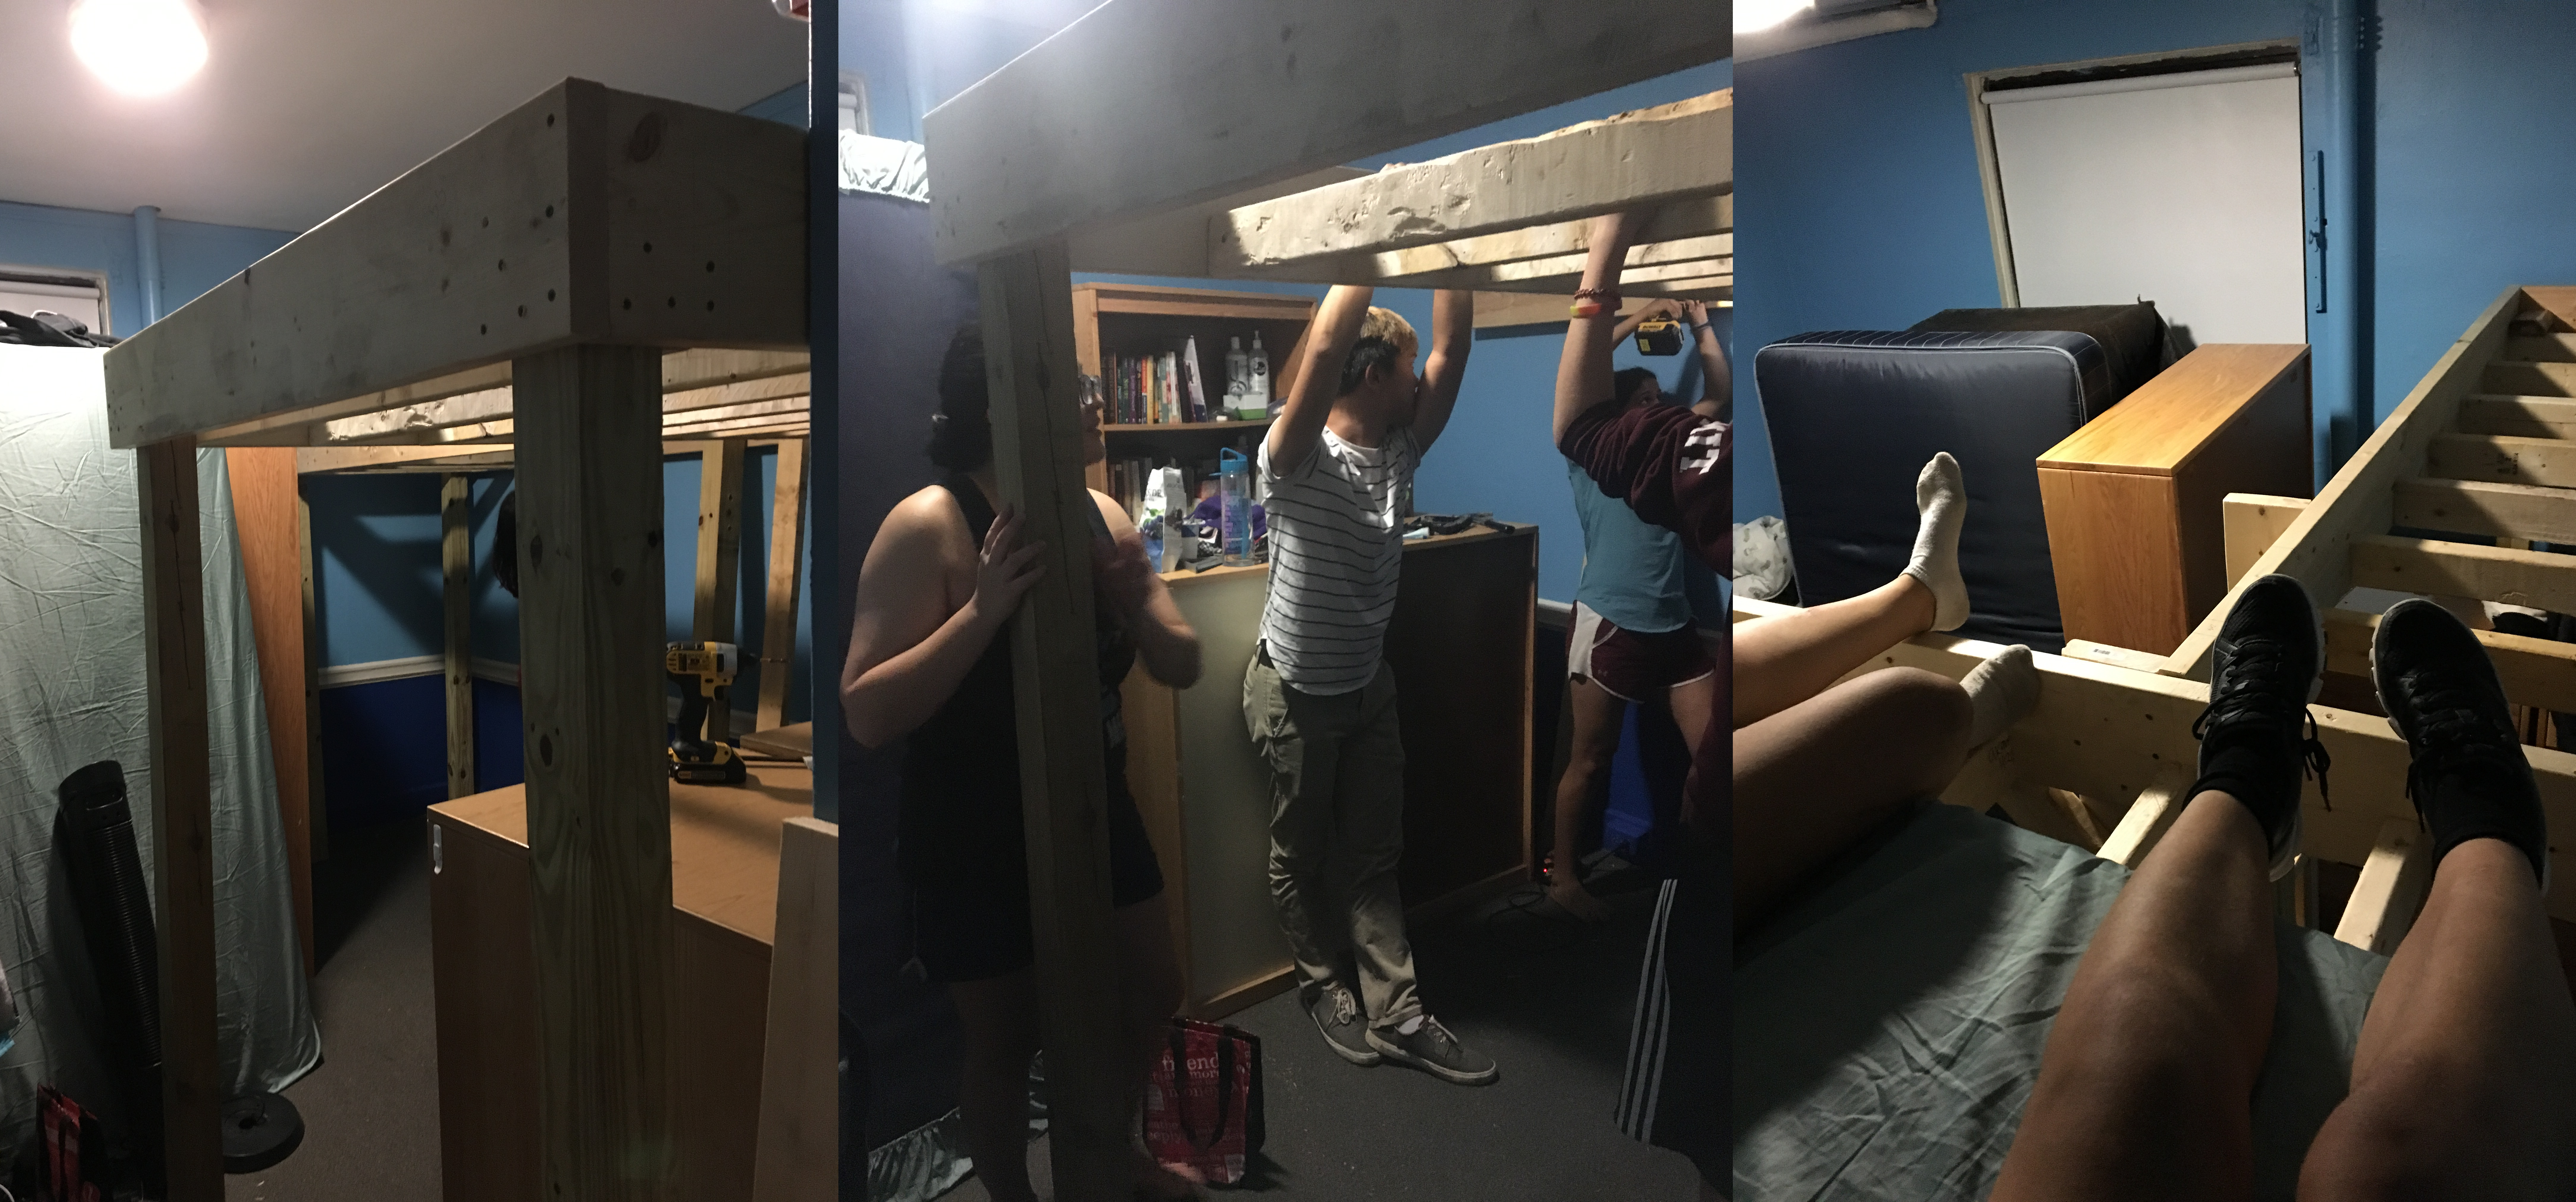 Three images: 1. In the foreground, the first completed loft can be seen. A second loft is in the background, and some but not all of the furniture has been moved out of sight. 2. A group of people hold the bedframe from earlier photos in the air. A 4x4 pillar can be seen at one corner, supporting it. 3. My and my roommate's legs, sitting on my lofted mattress. Her bedframe can be seen to the right, and the tops of our furniture to the left.